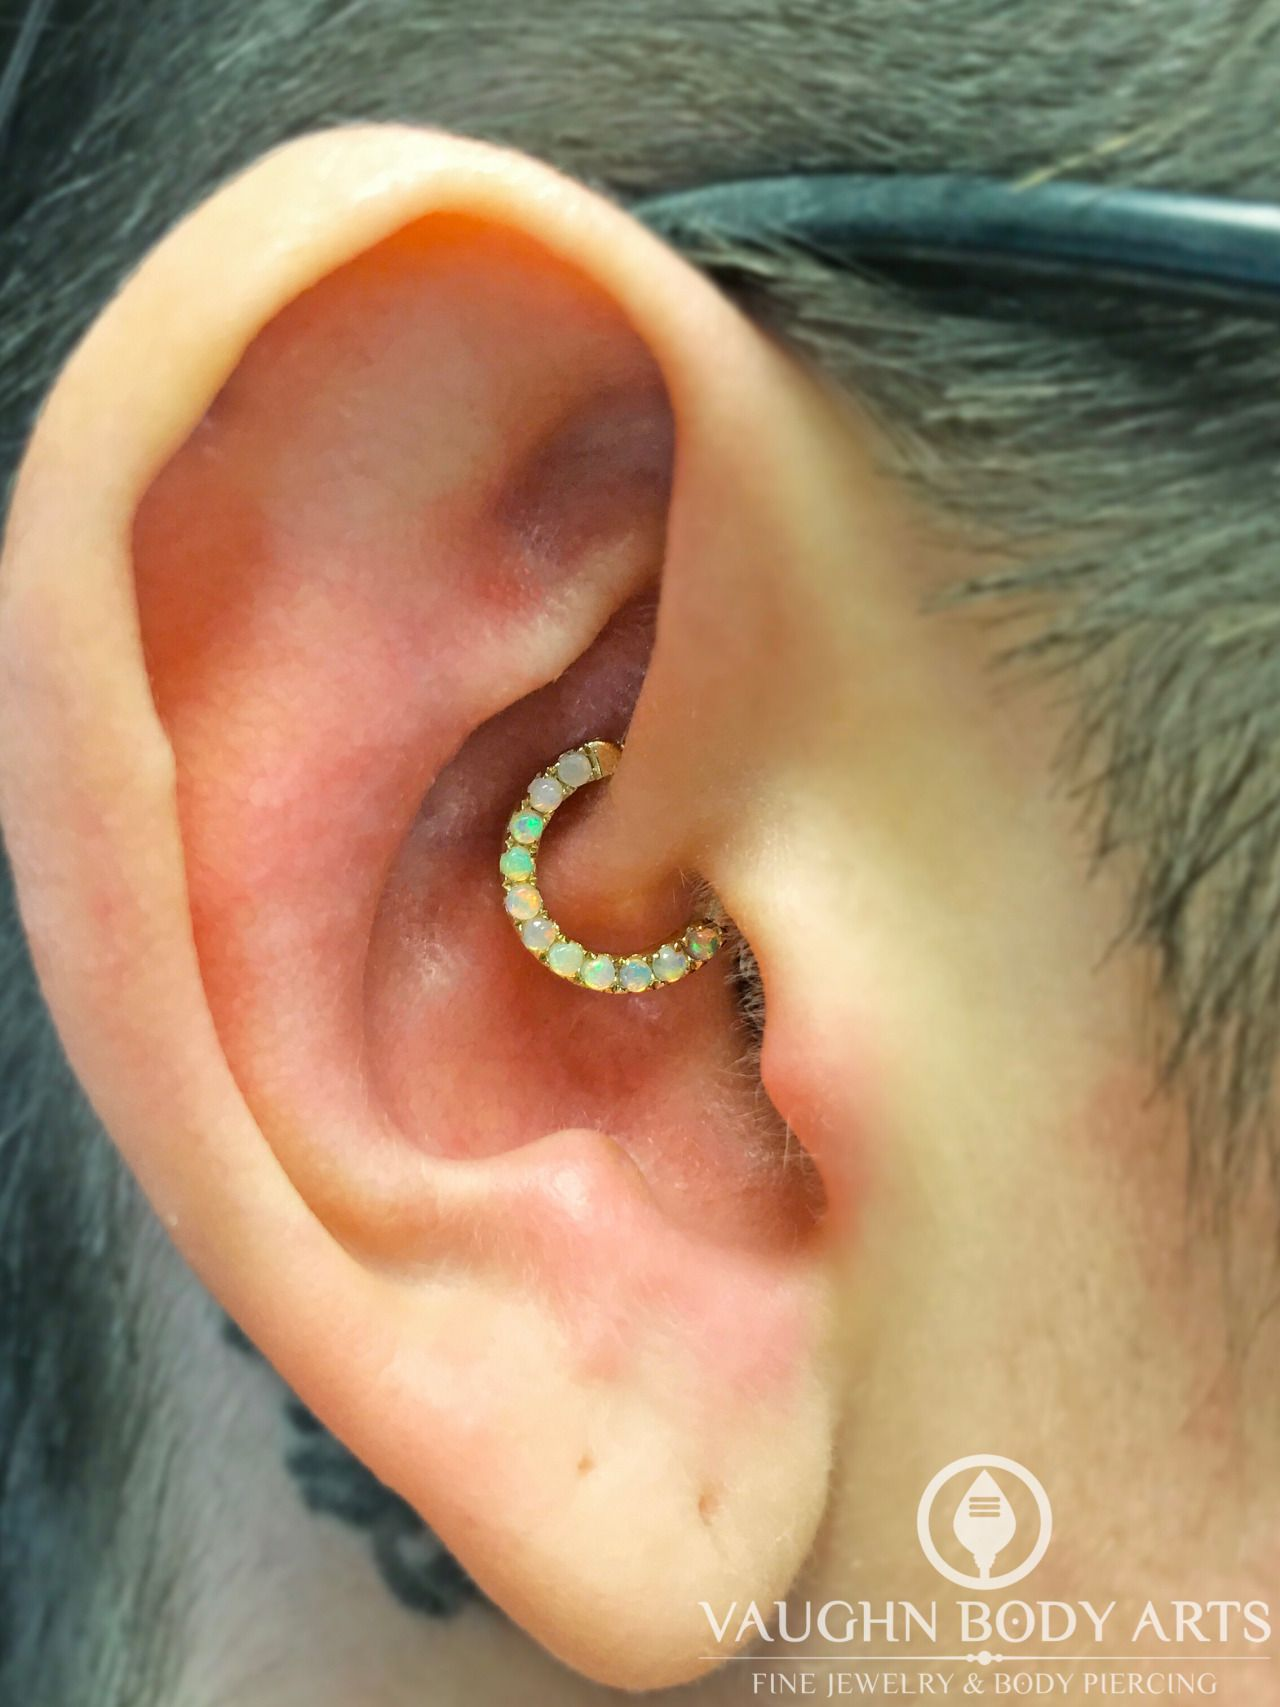 Healed up nose piercing  Sydney stopped by when we opened in search of new fancy jewelry for